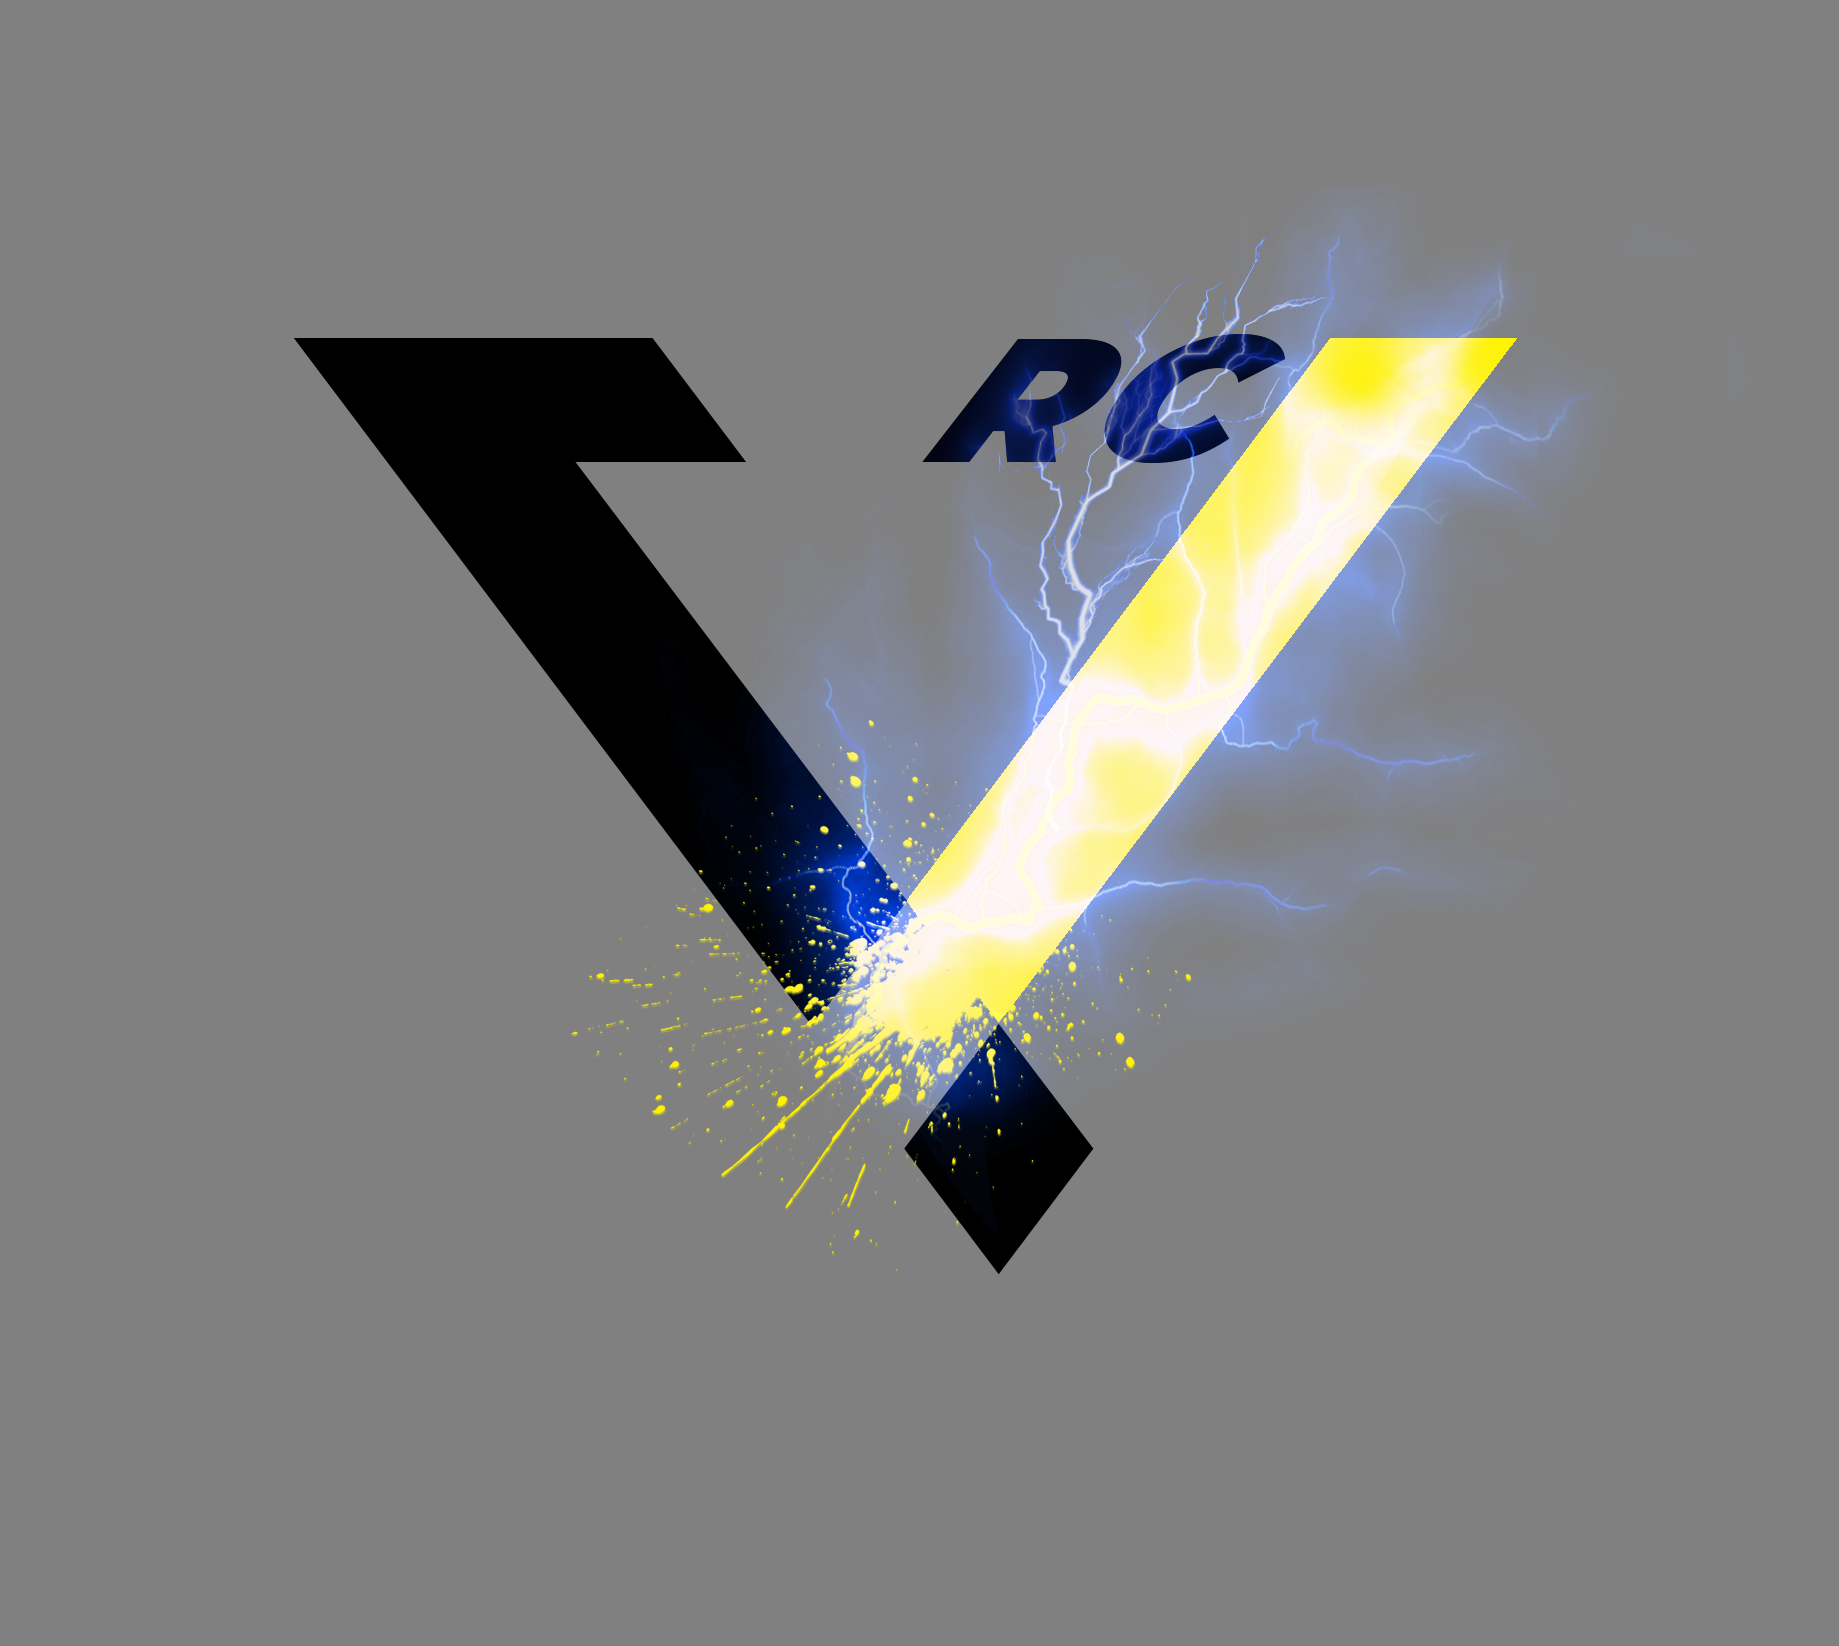 Voltiv rain racing club